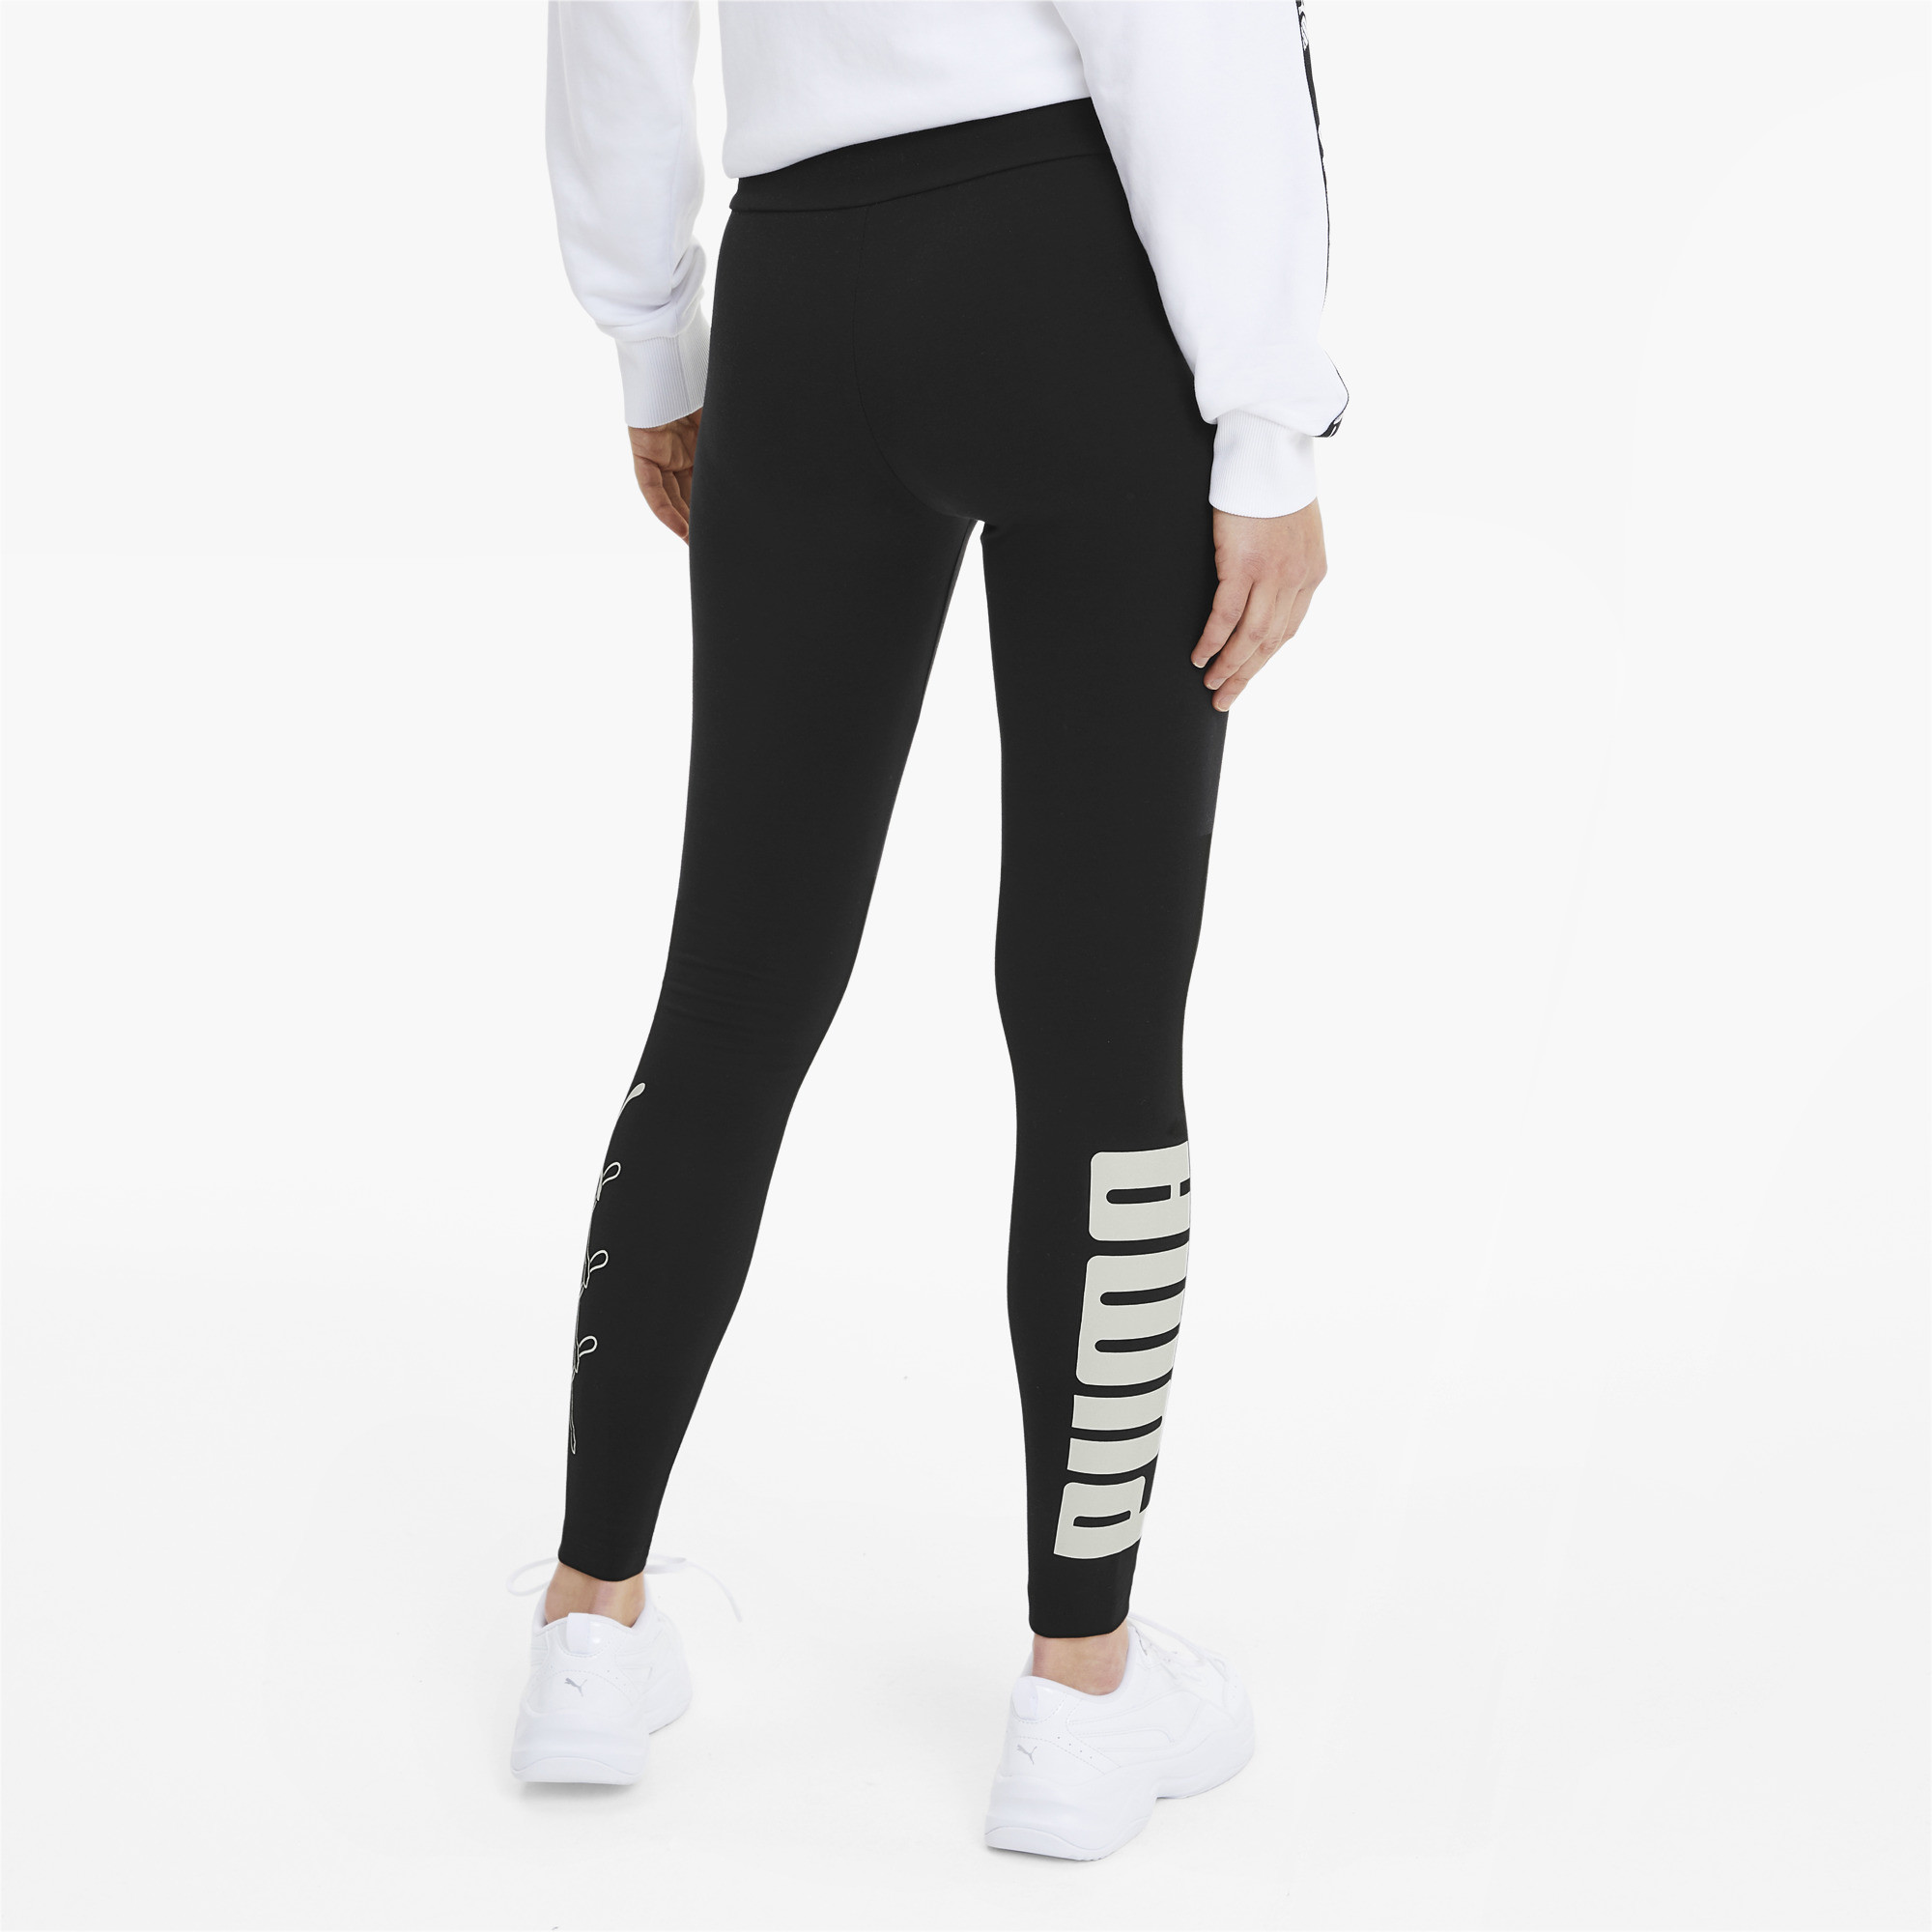 PUMA-Rebel-Women-039-s-Leggings-Women-Basics thumbnail 10